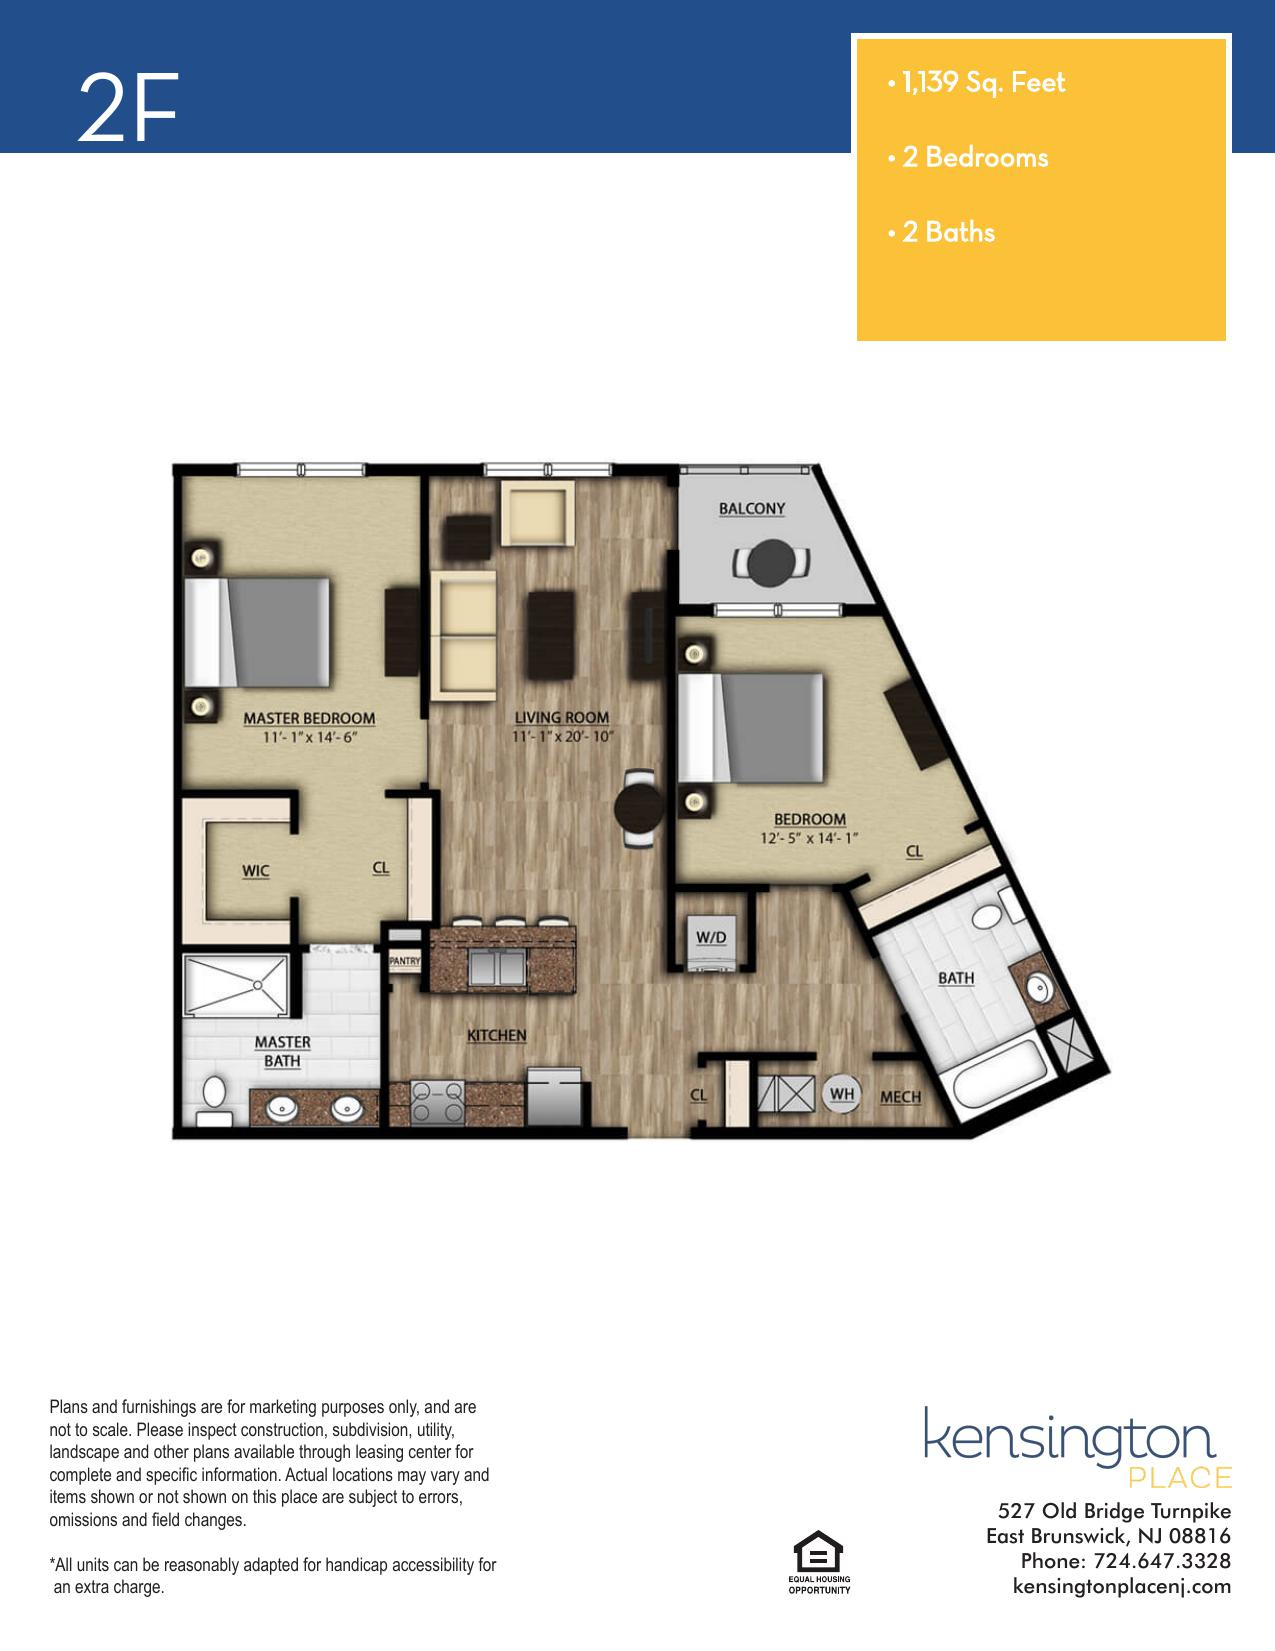 Kensington Place Apartment Floor Plan 2F